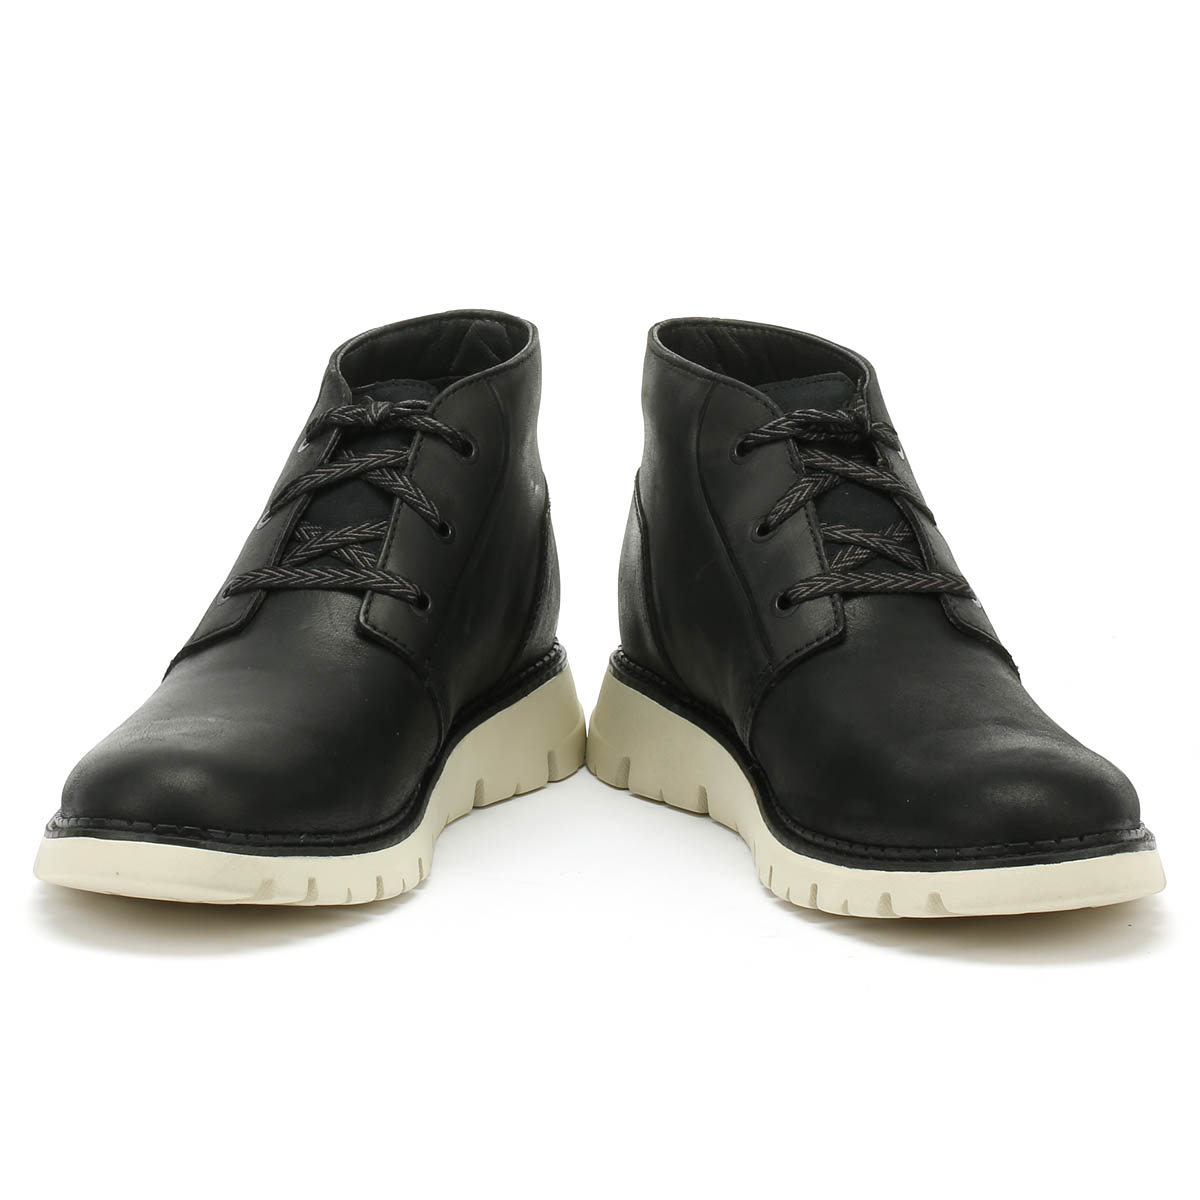 Caterpillar Sidcup Mens Chukka Boots Black Leather Lace Up